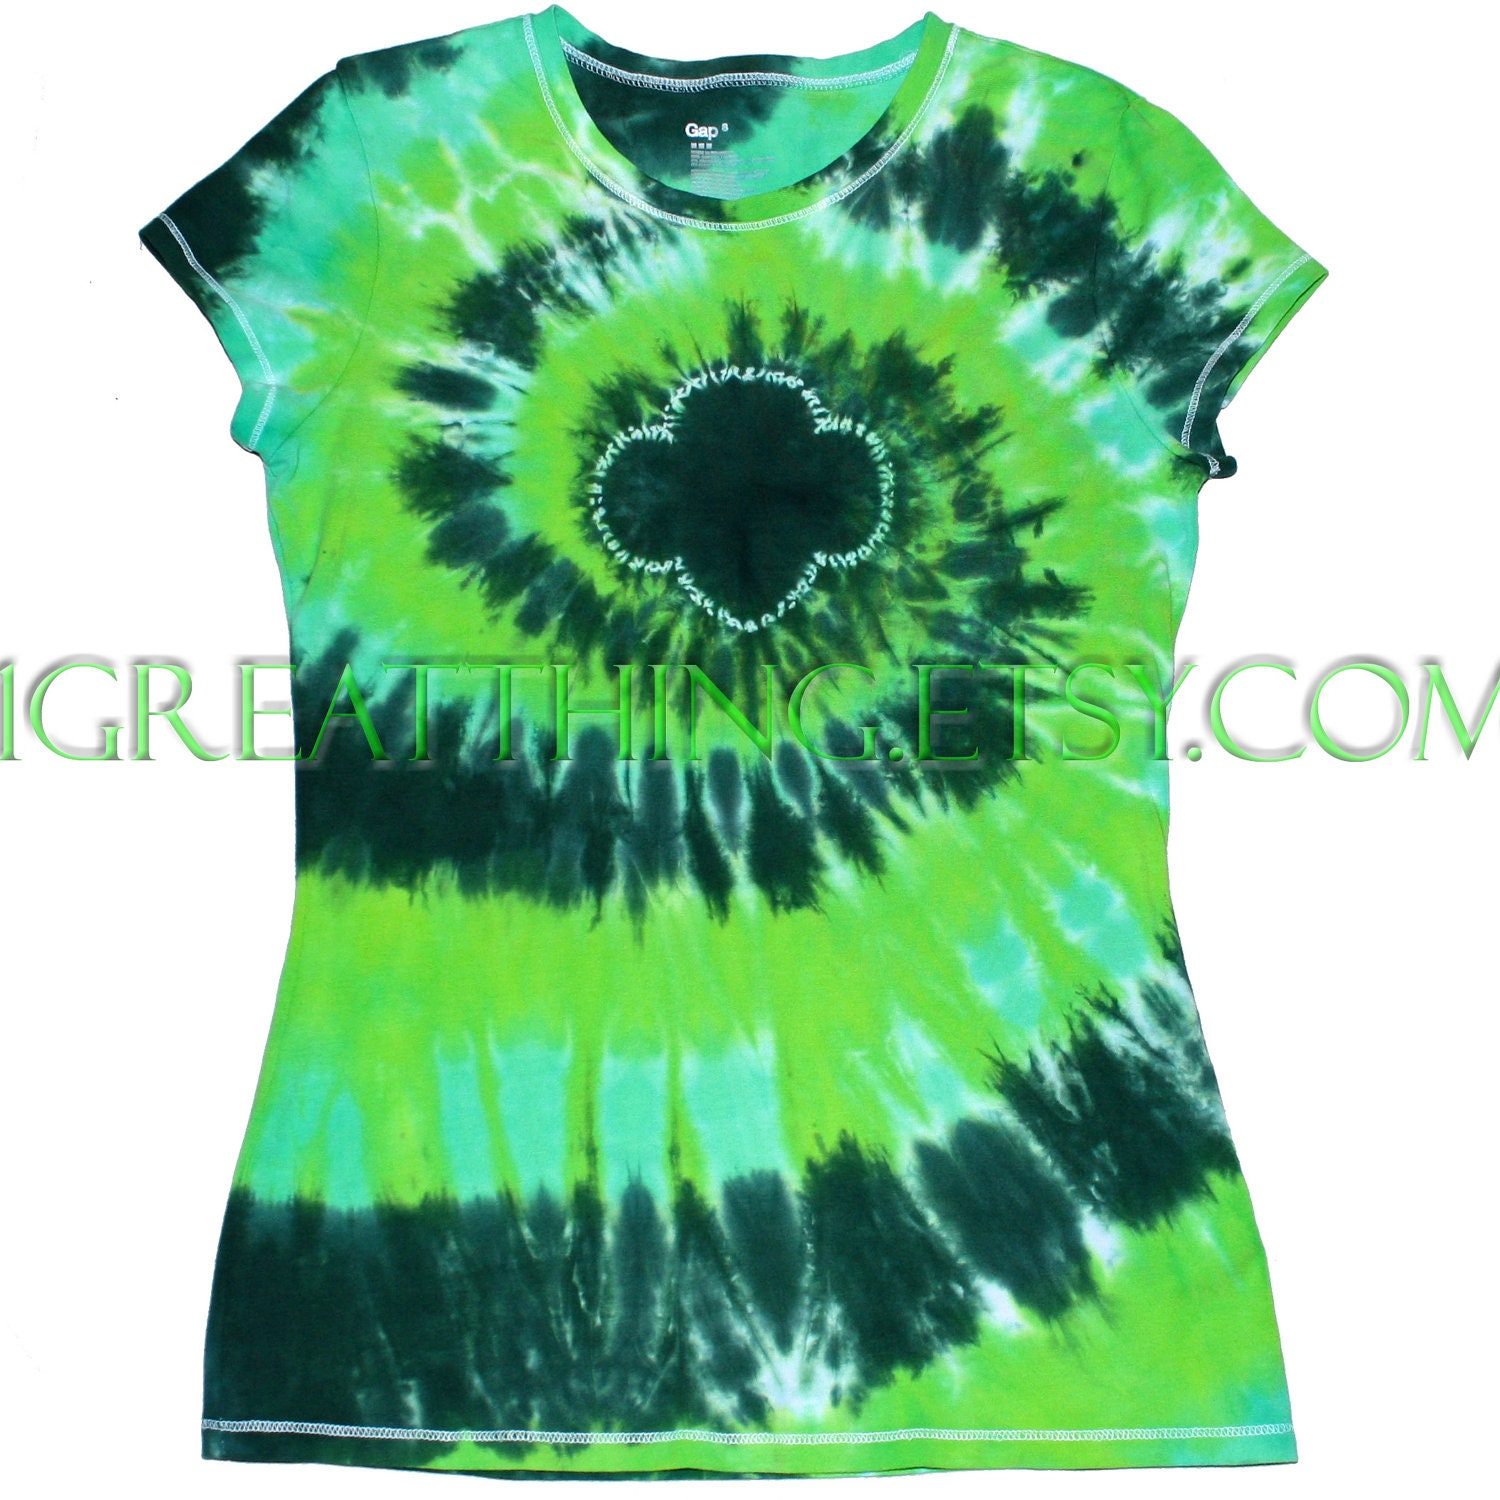 Girl scout trefoil tie dye t shirt ready to ship womens and for Girl scout troop shirts